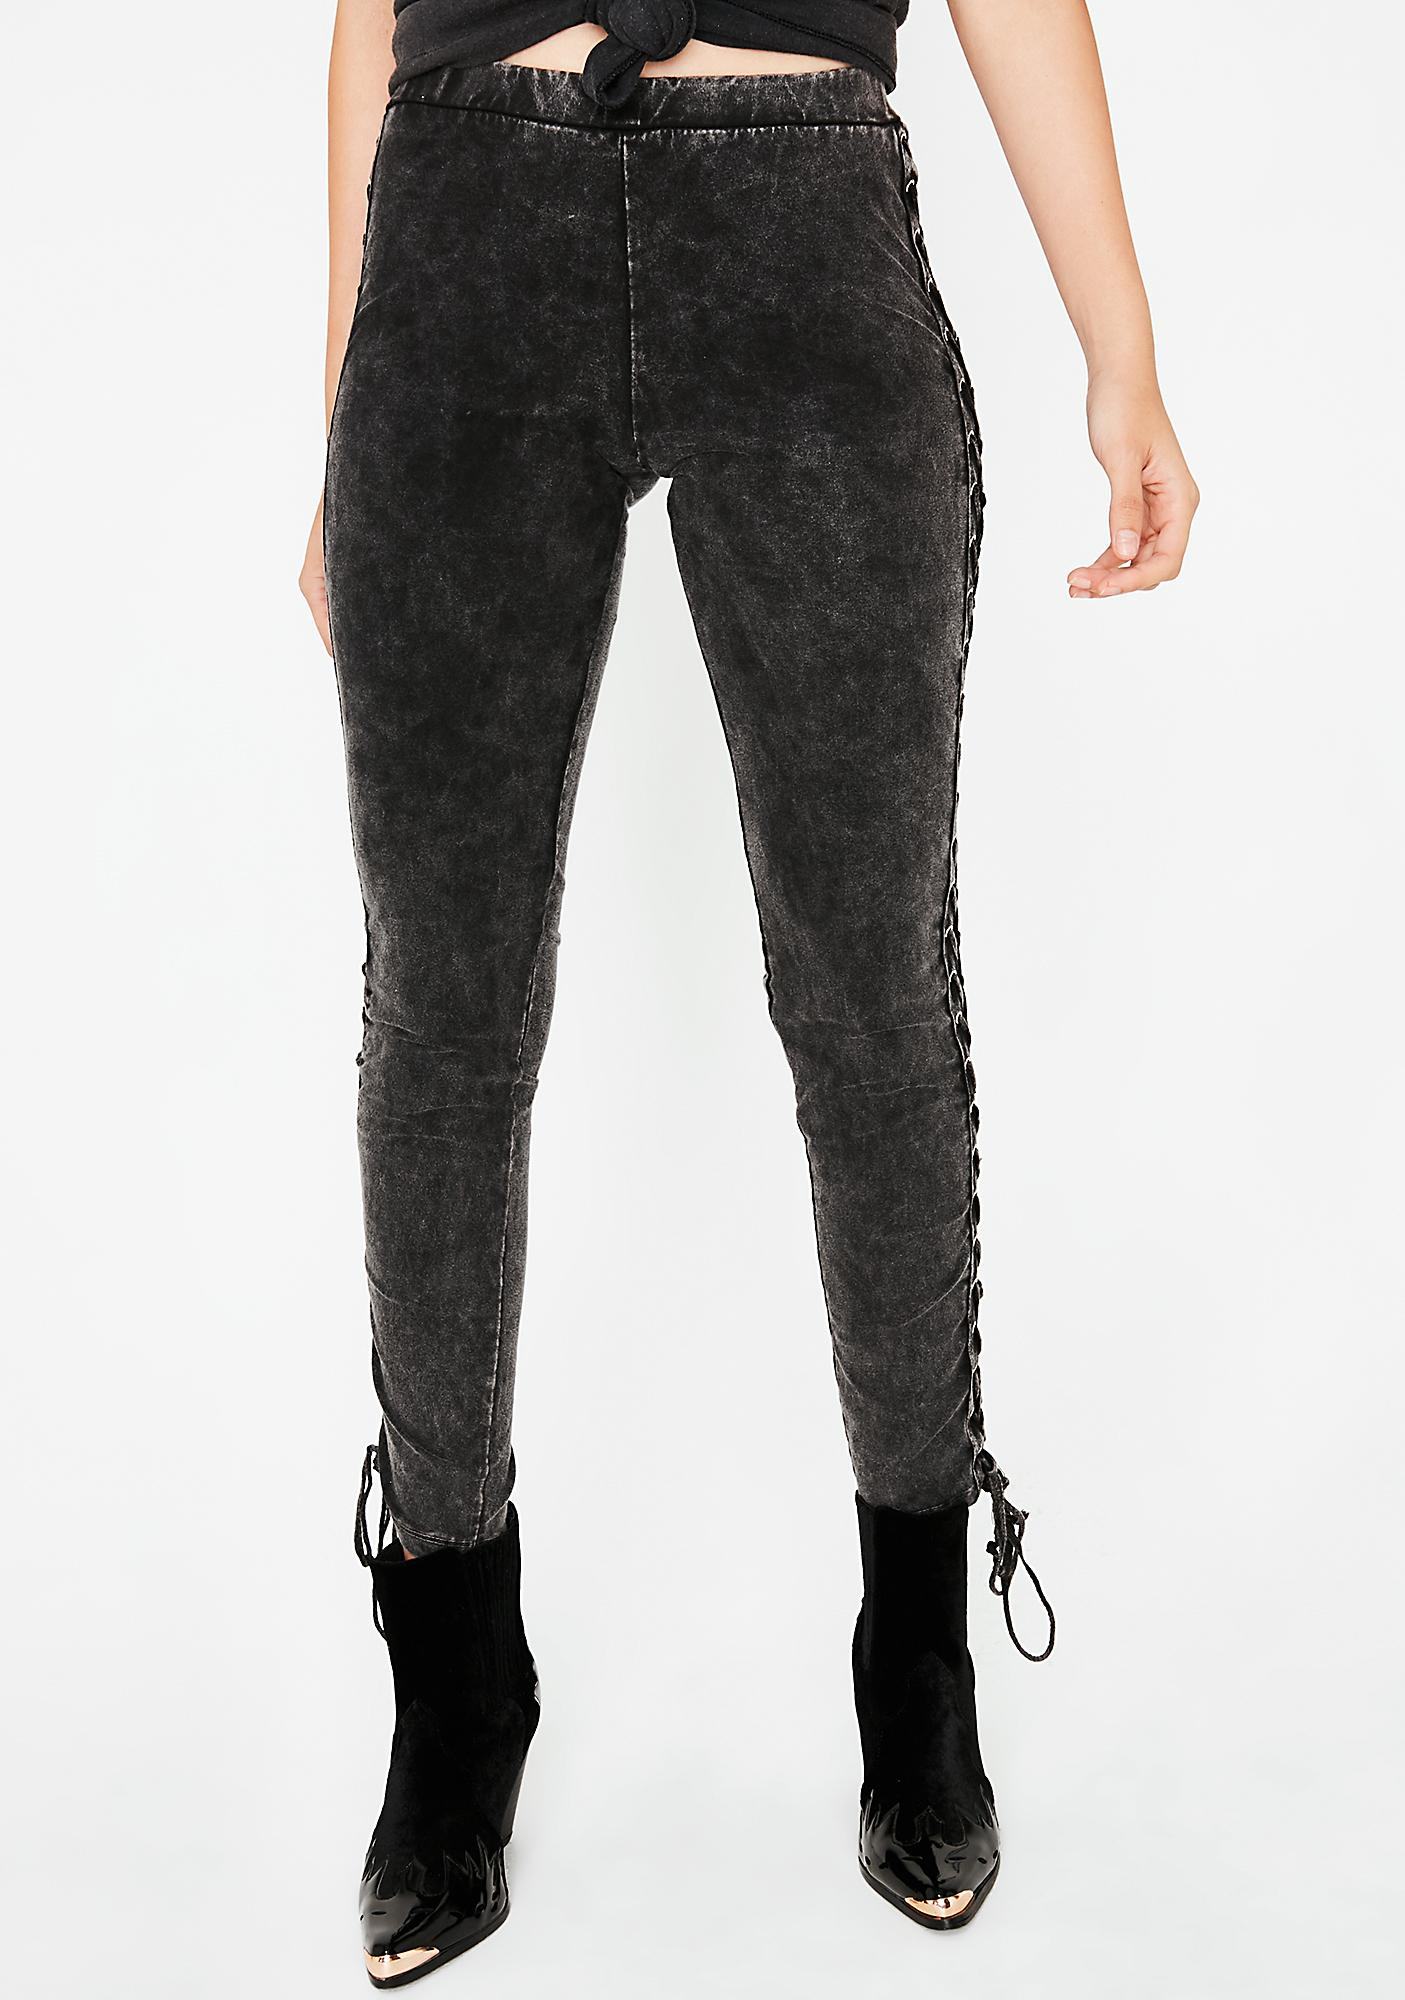 Come My Way Lace-Up Leggings